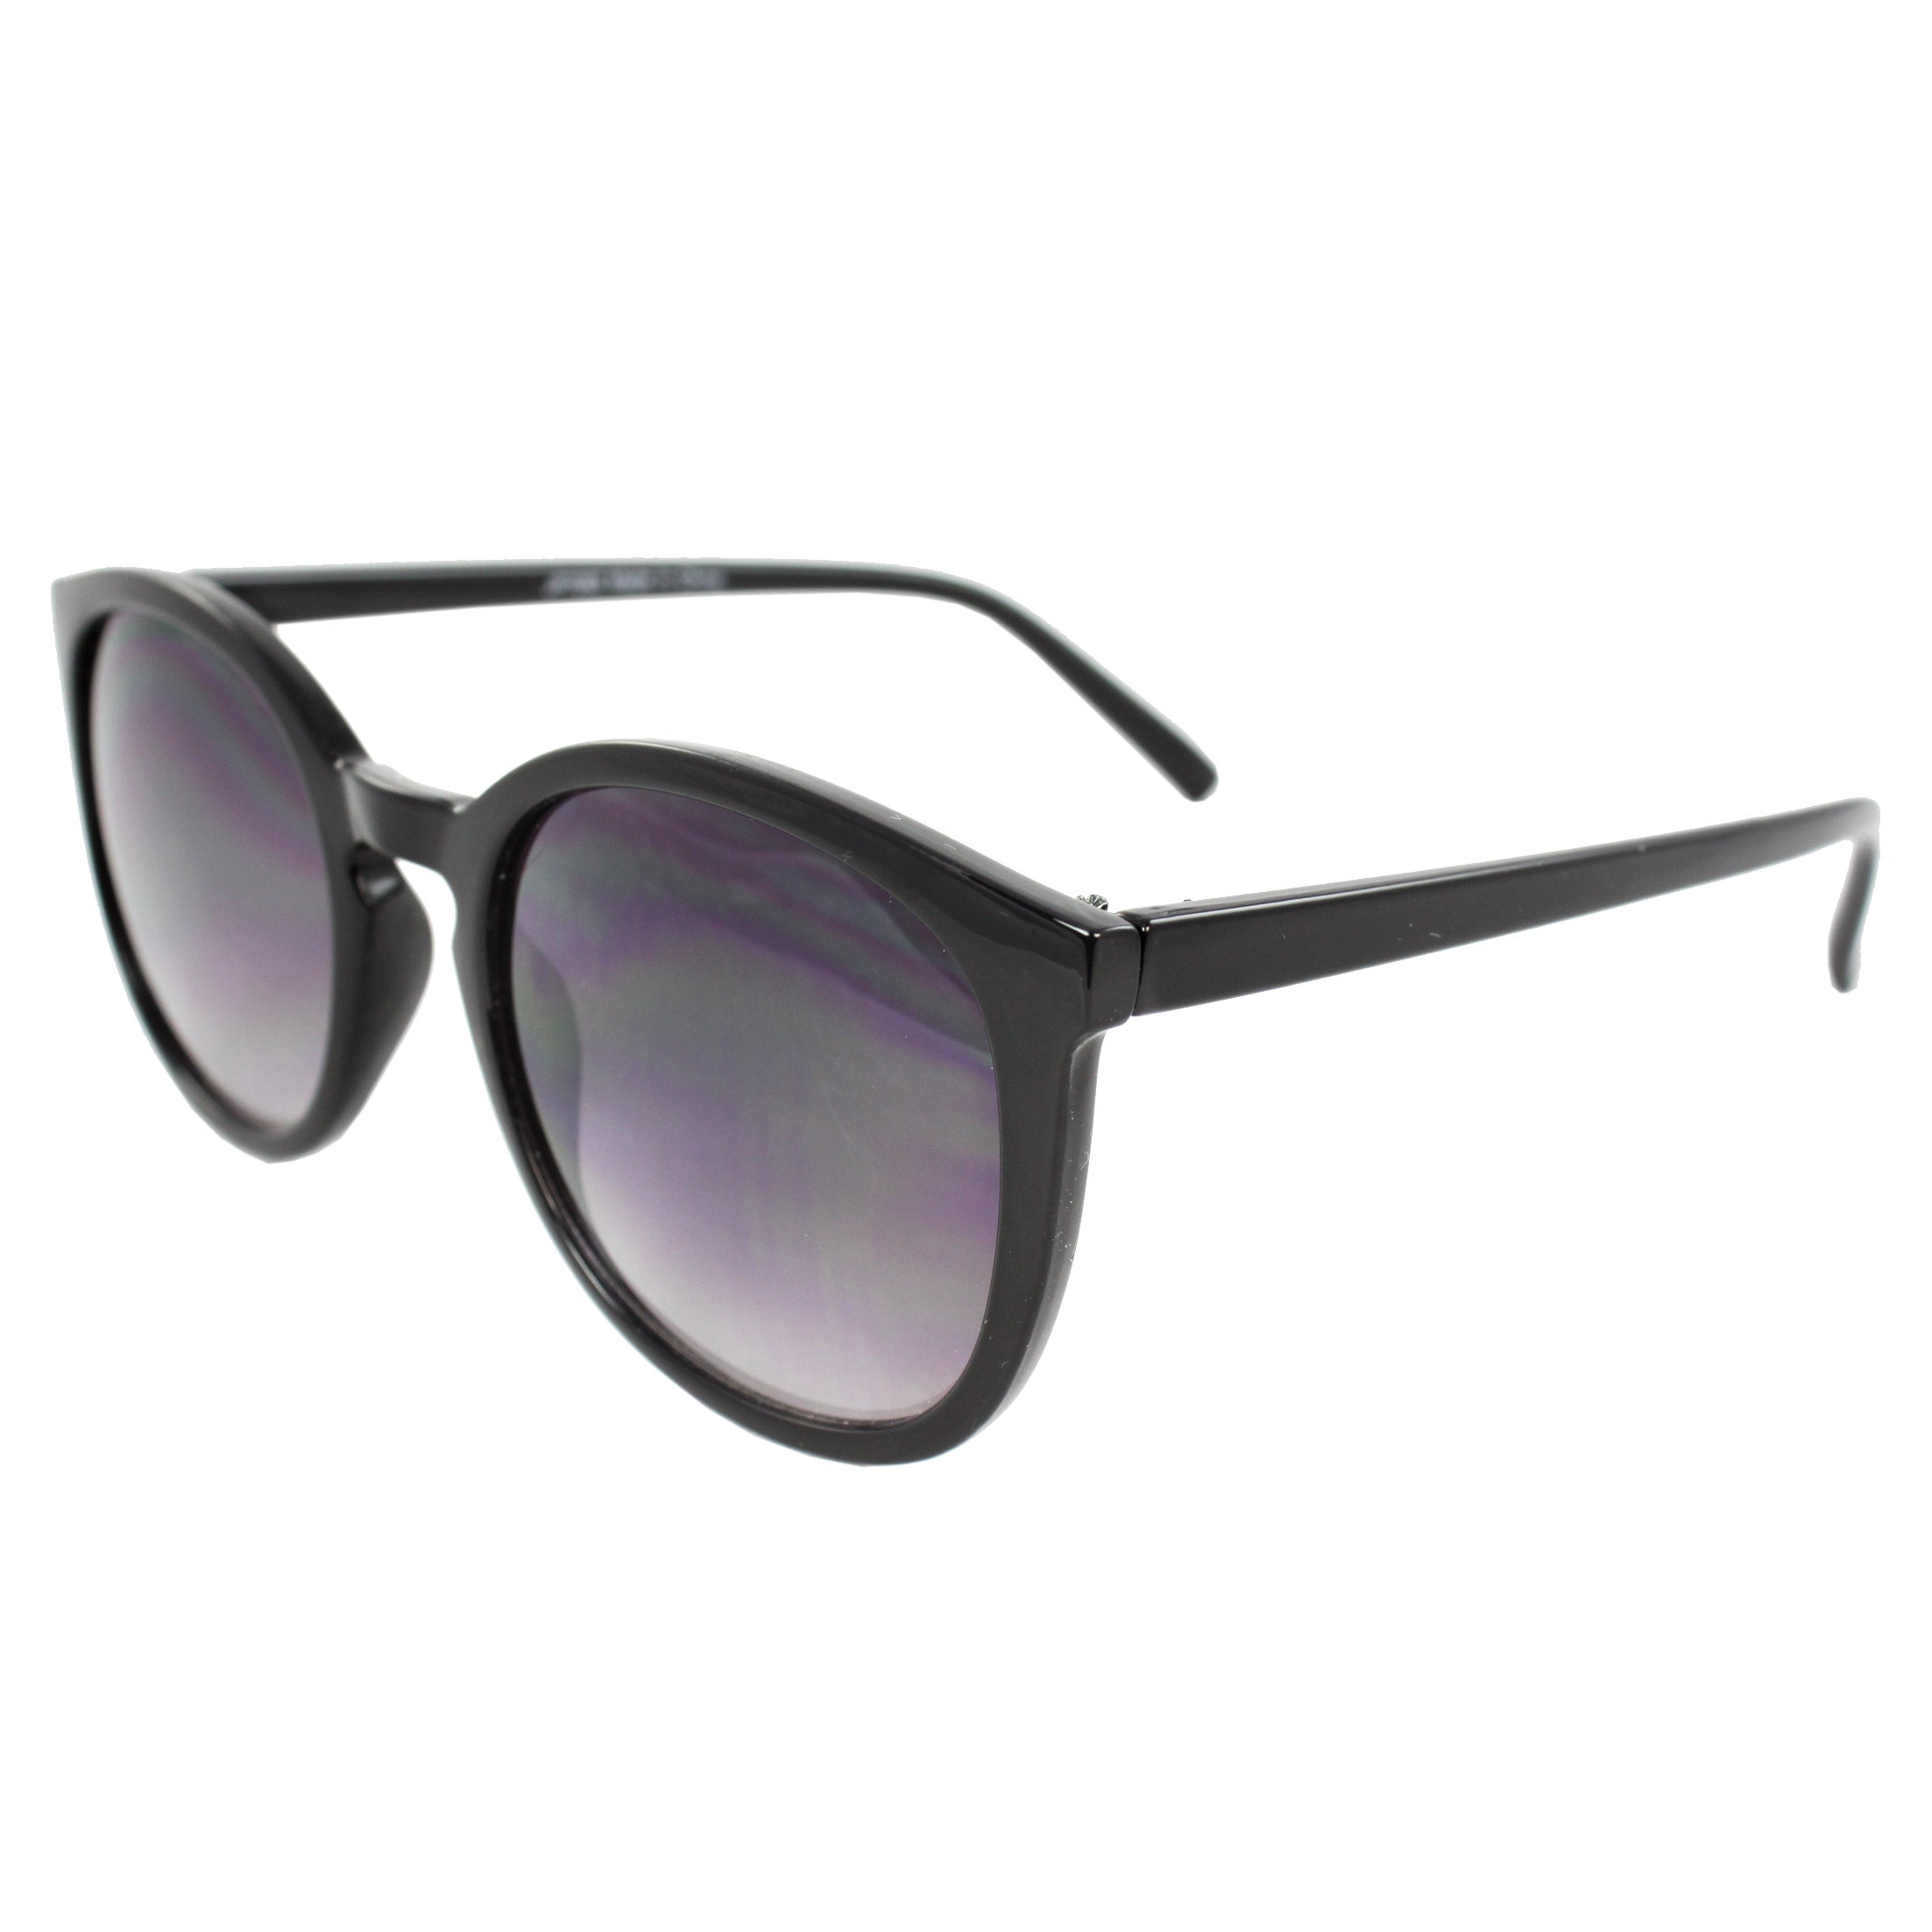 Women's Black Oval Fashion Sunglasses